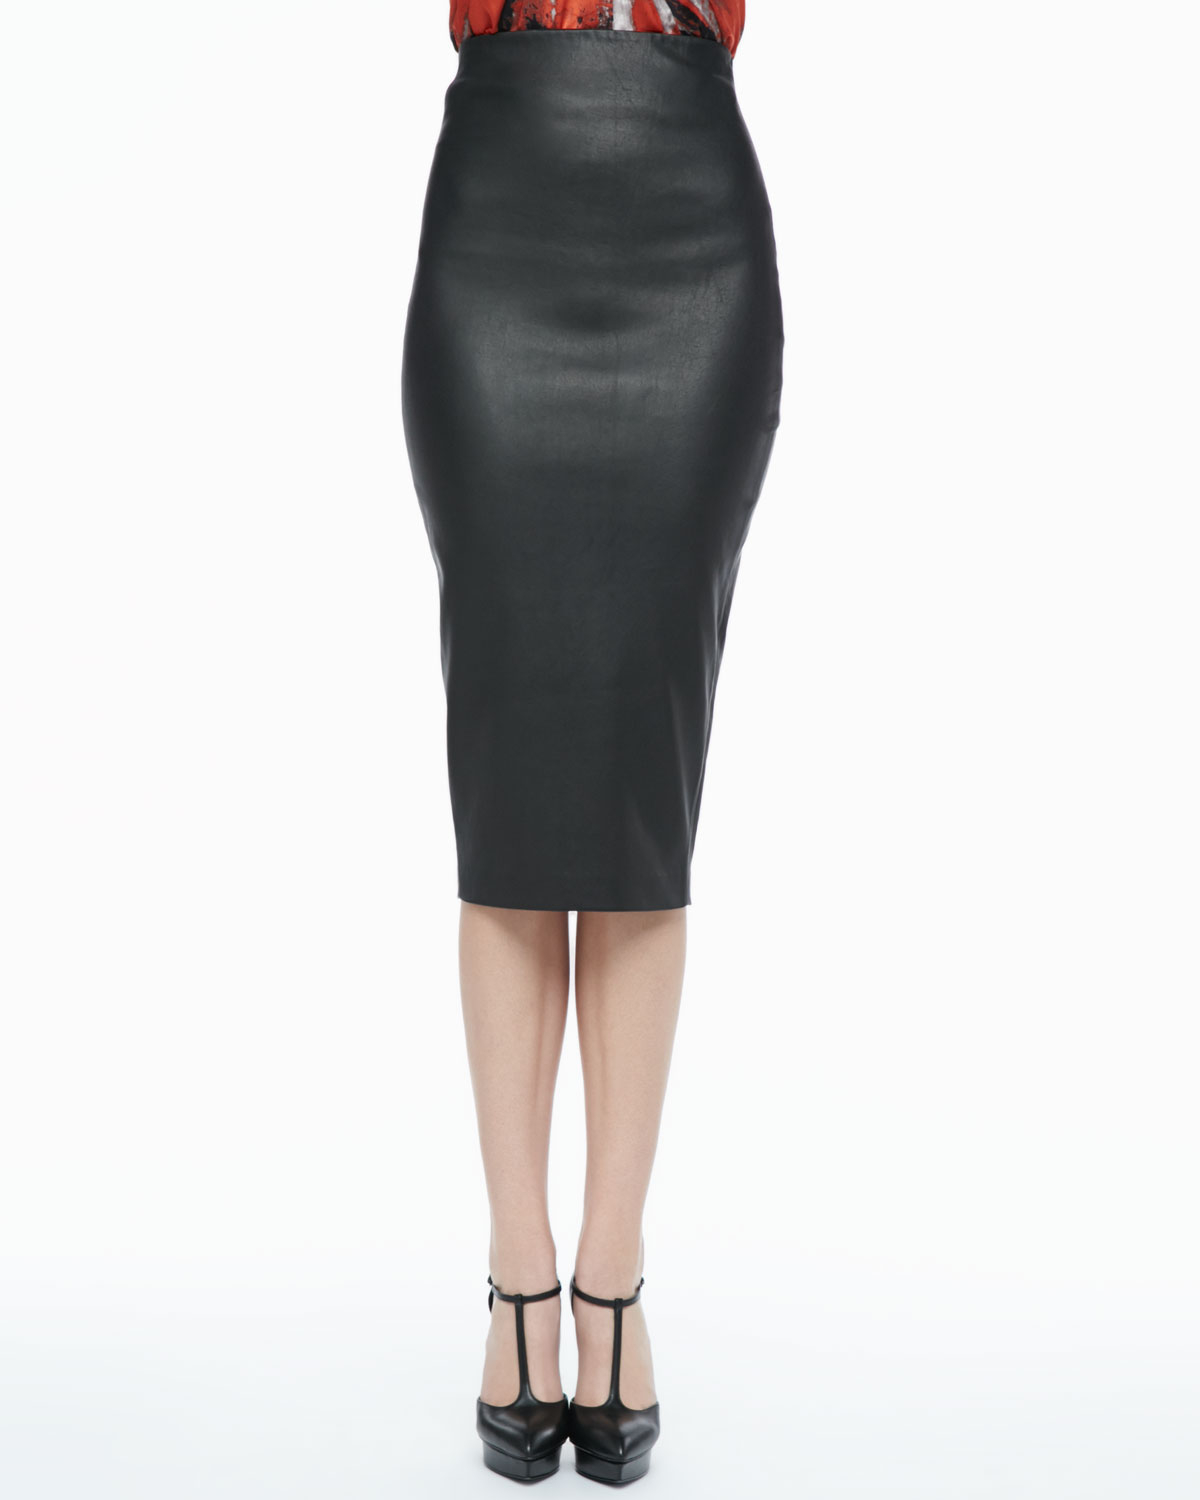 High Waisted Leather Pencil Skirt | Fashion Skirts